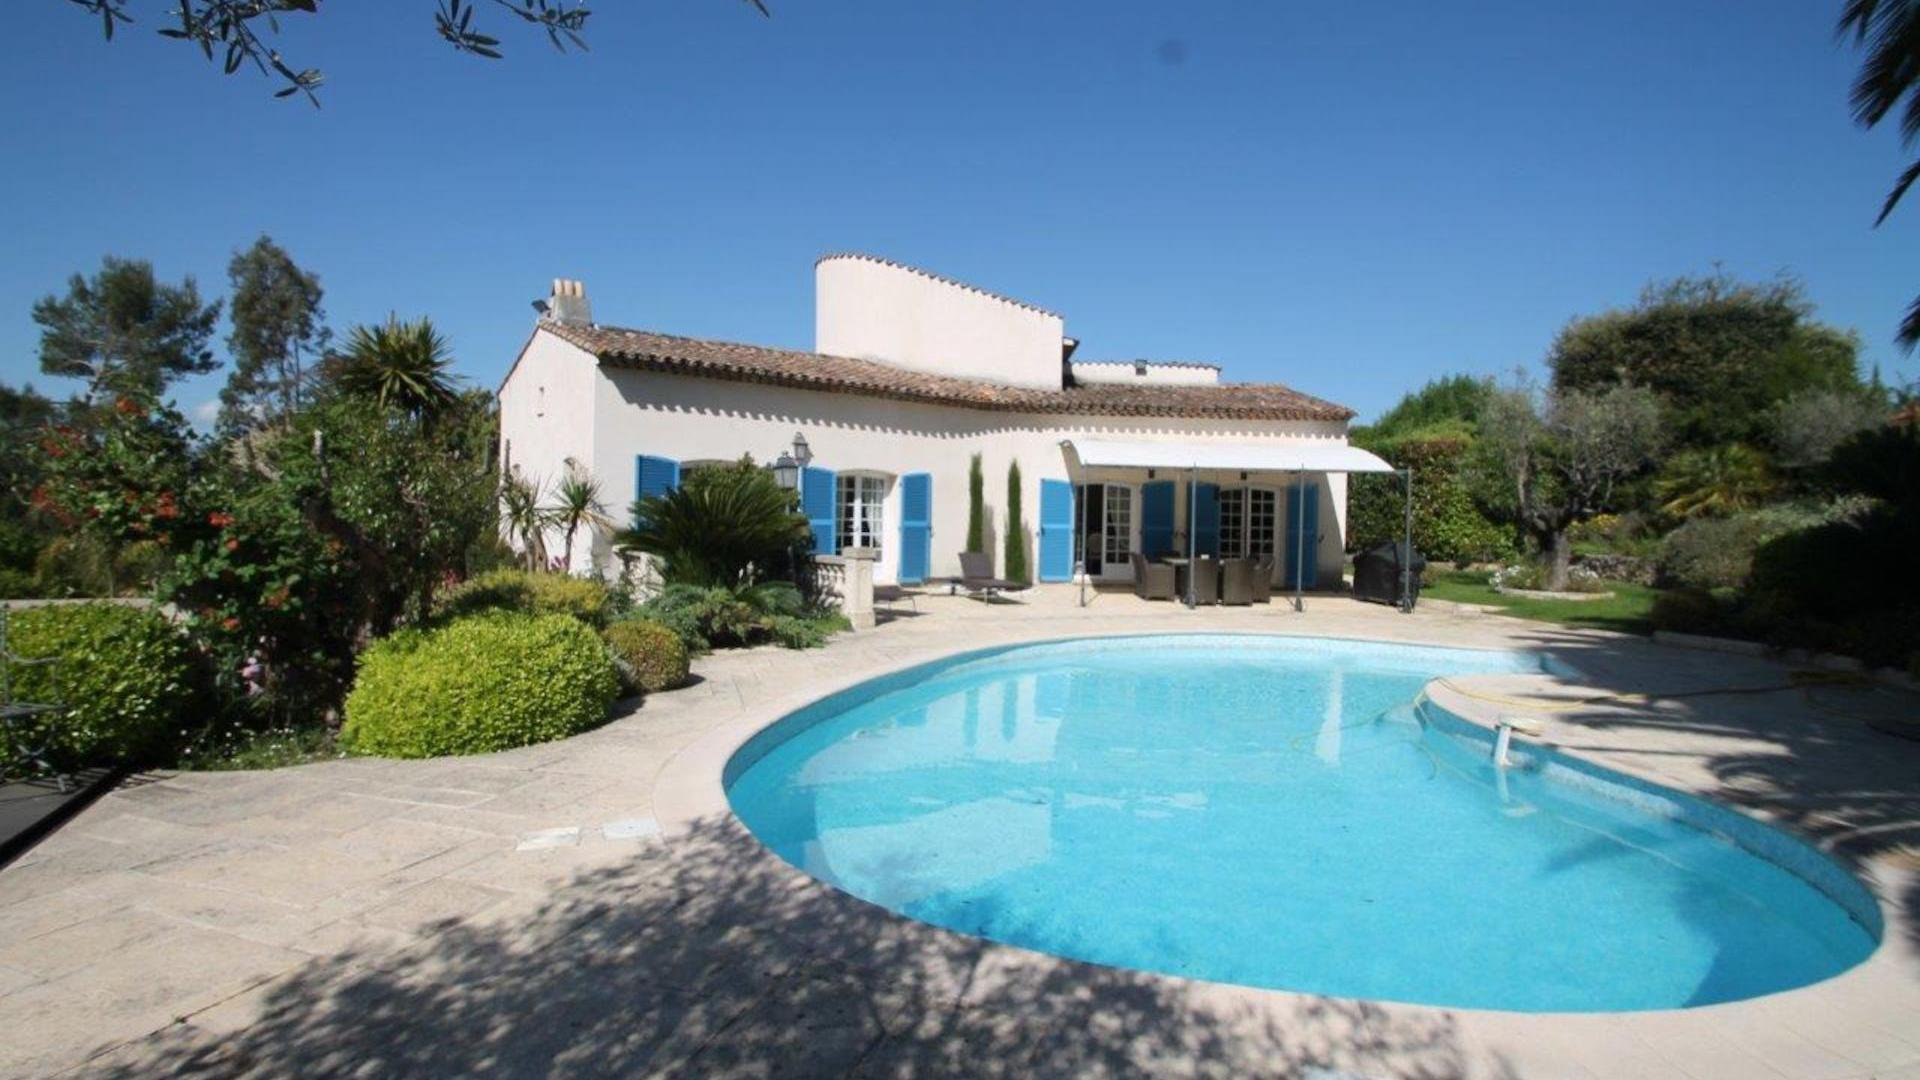 Provencale Villa with Pool in Valbonne